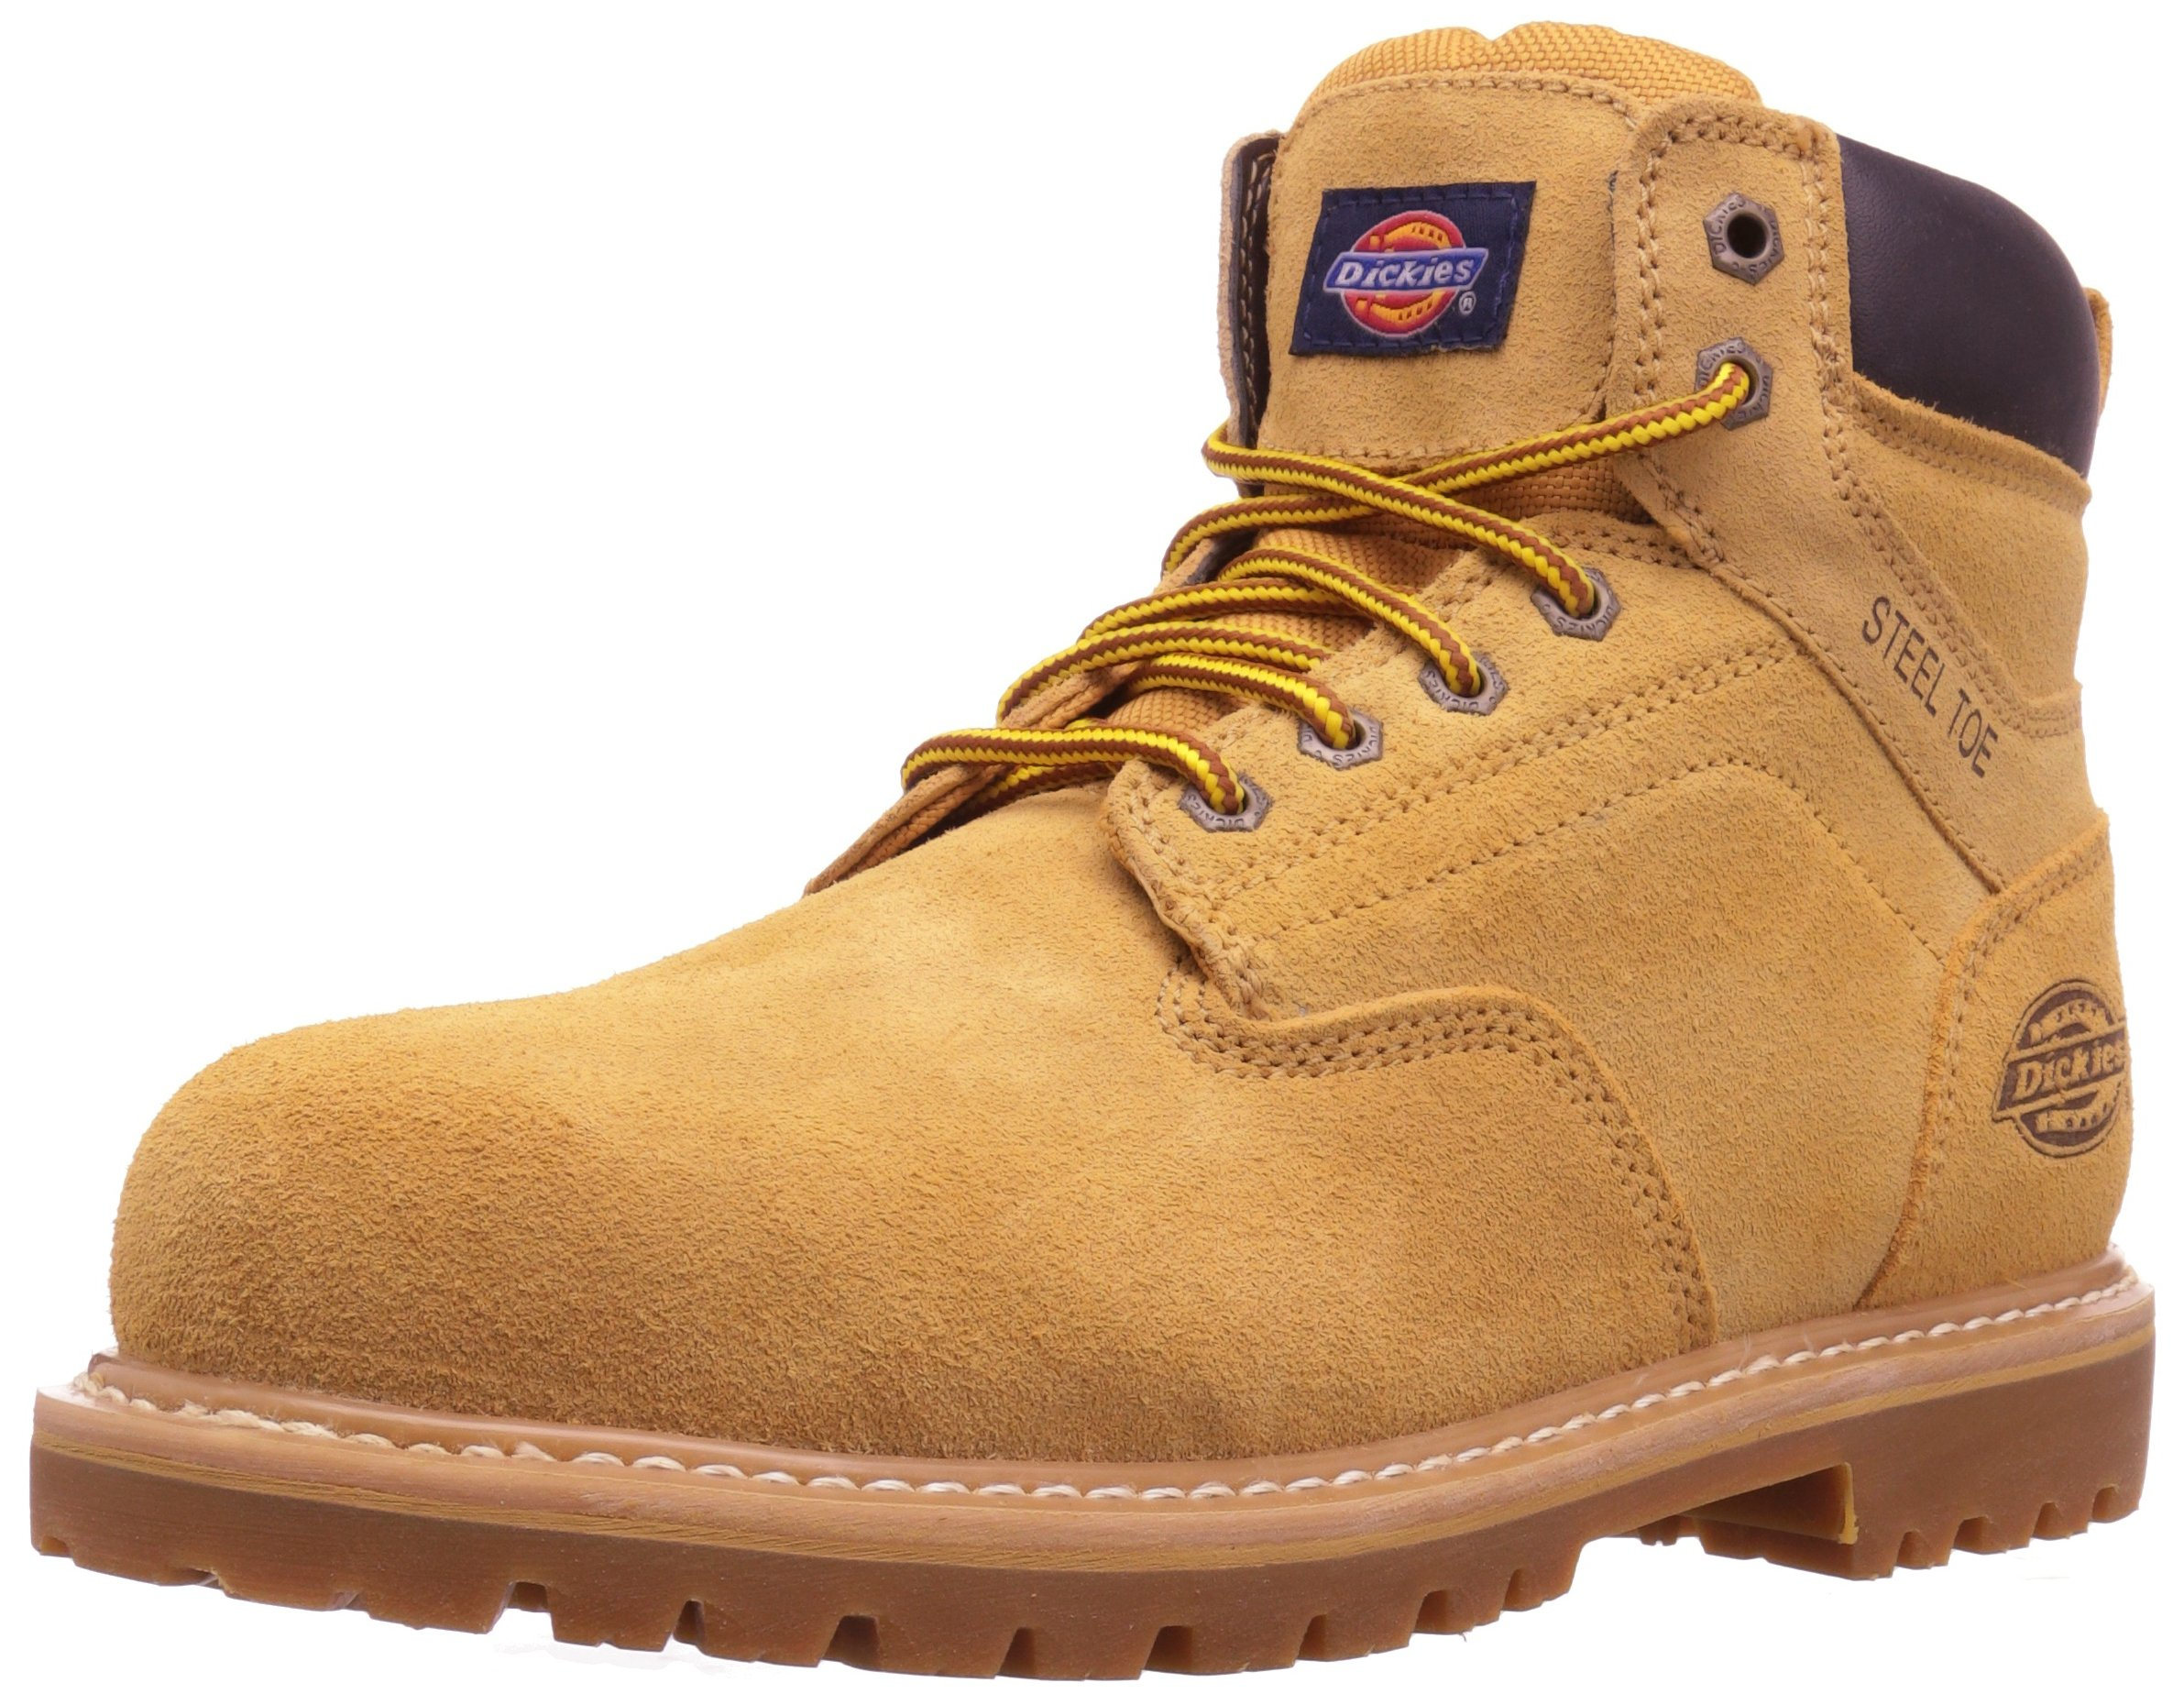 Dickies Men's Prowler Work Boot, Wheat, 9 M US